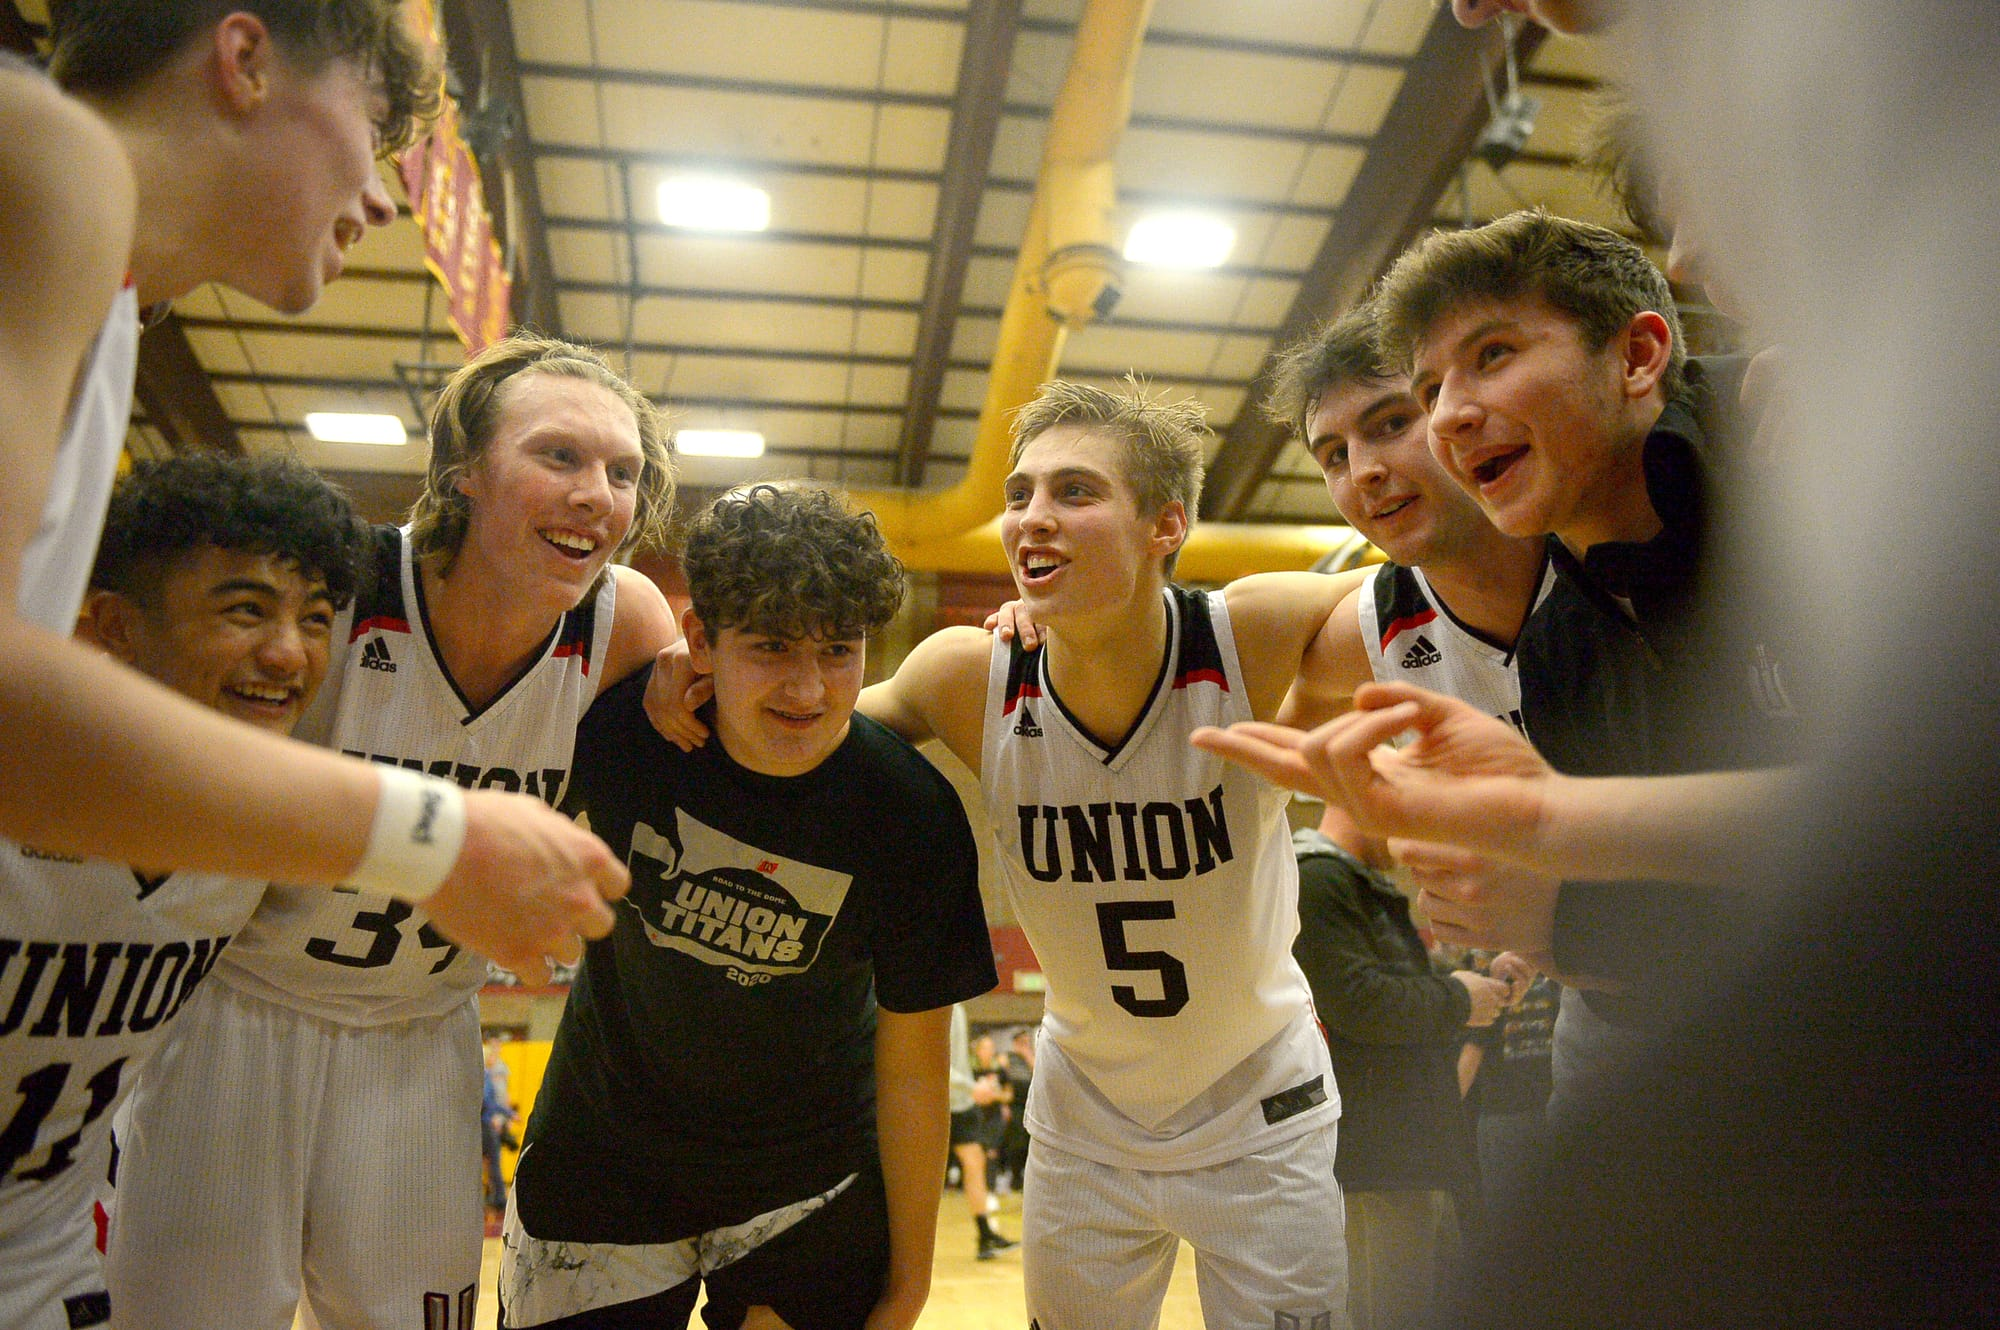 The Union boys basketball team celebrates after the 4A bi-district championship game against Battle Ground at Prairie High School on Saturday, February 22, 2020. Union beat Battle Ground 82-57. (Samuel Wilson for the Columbian)